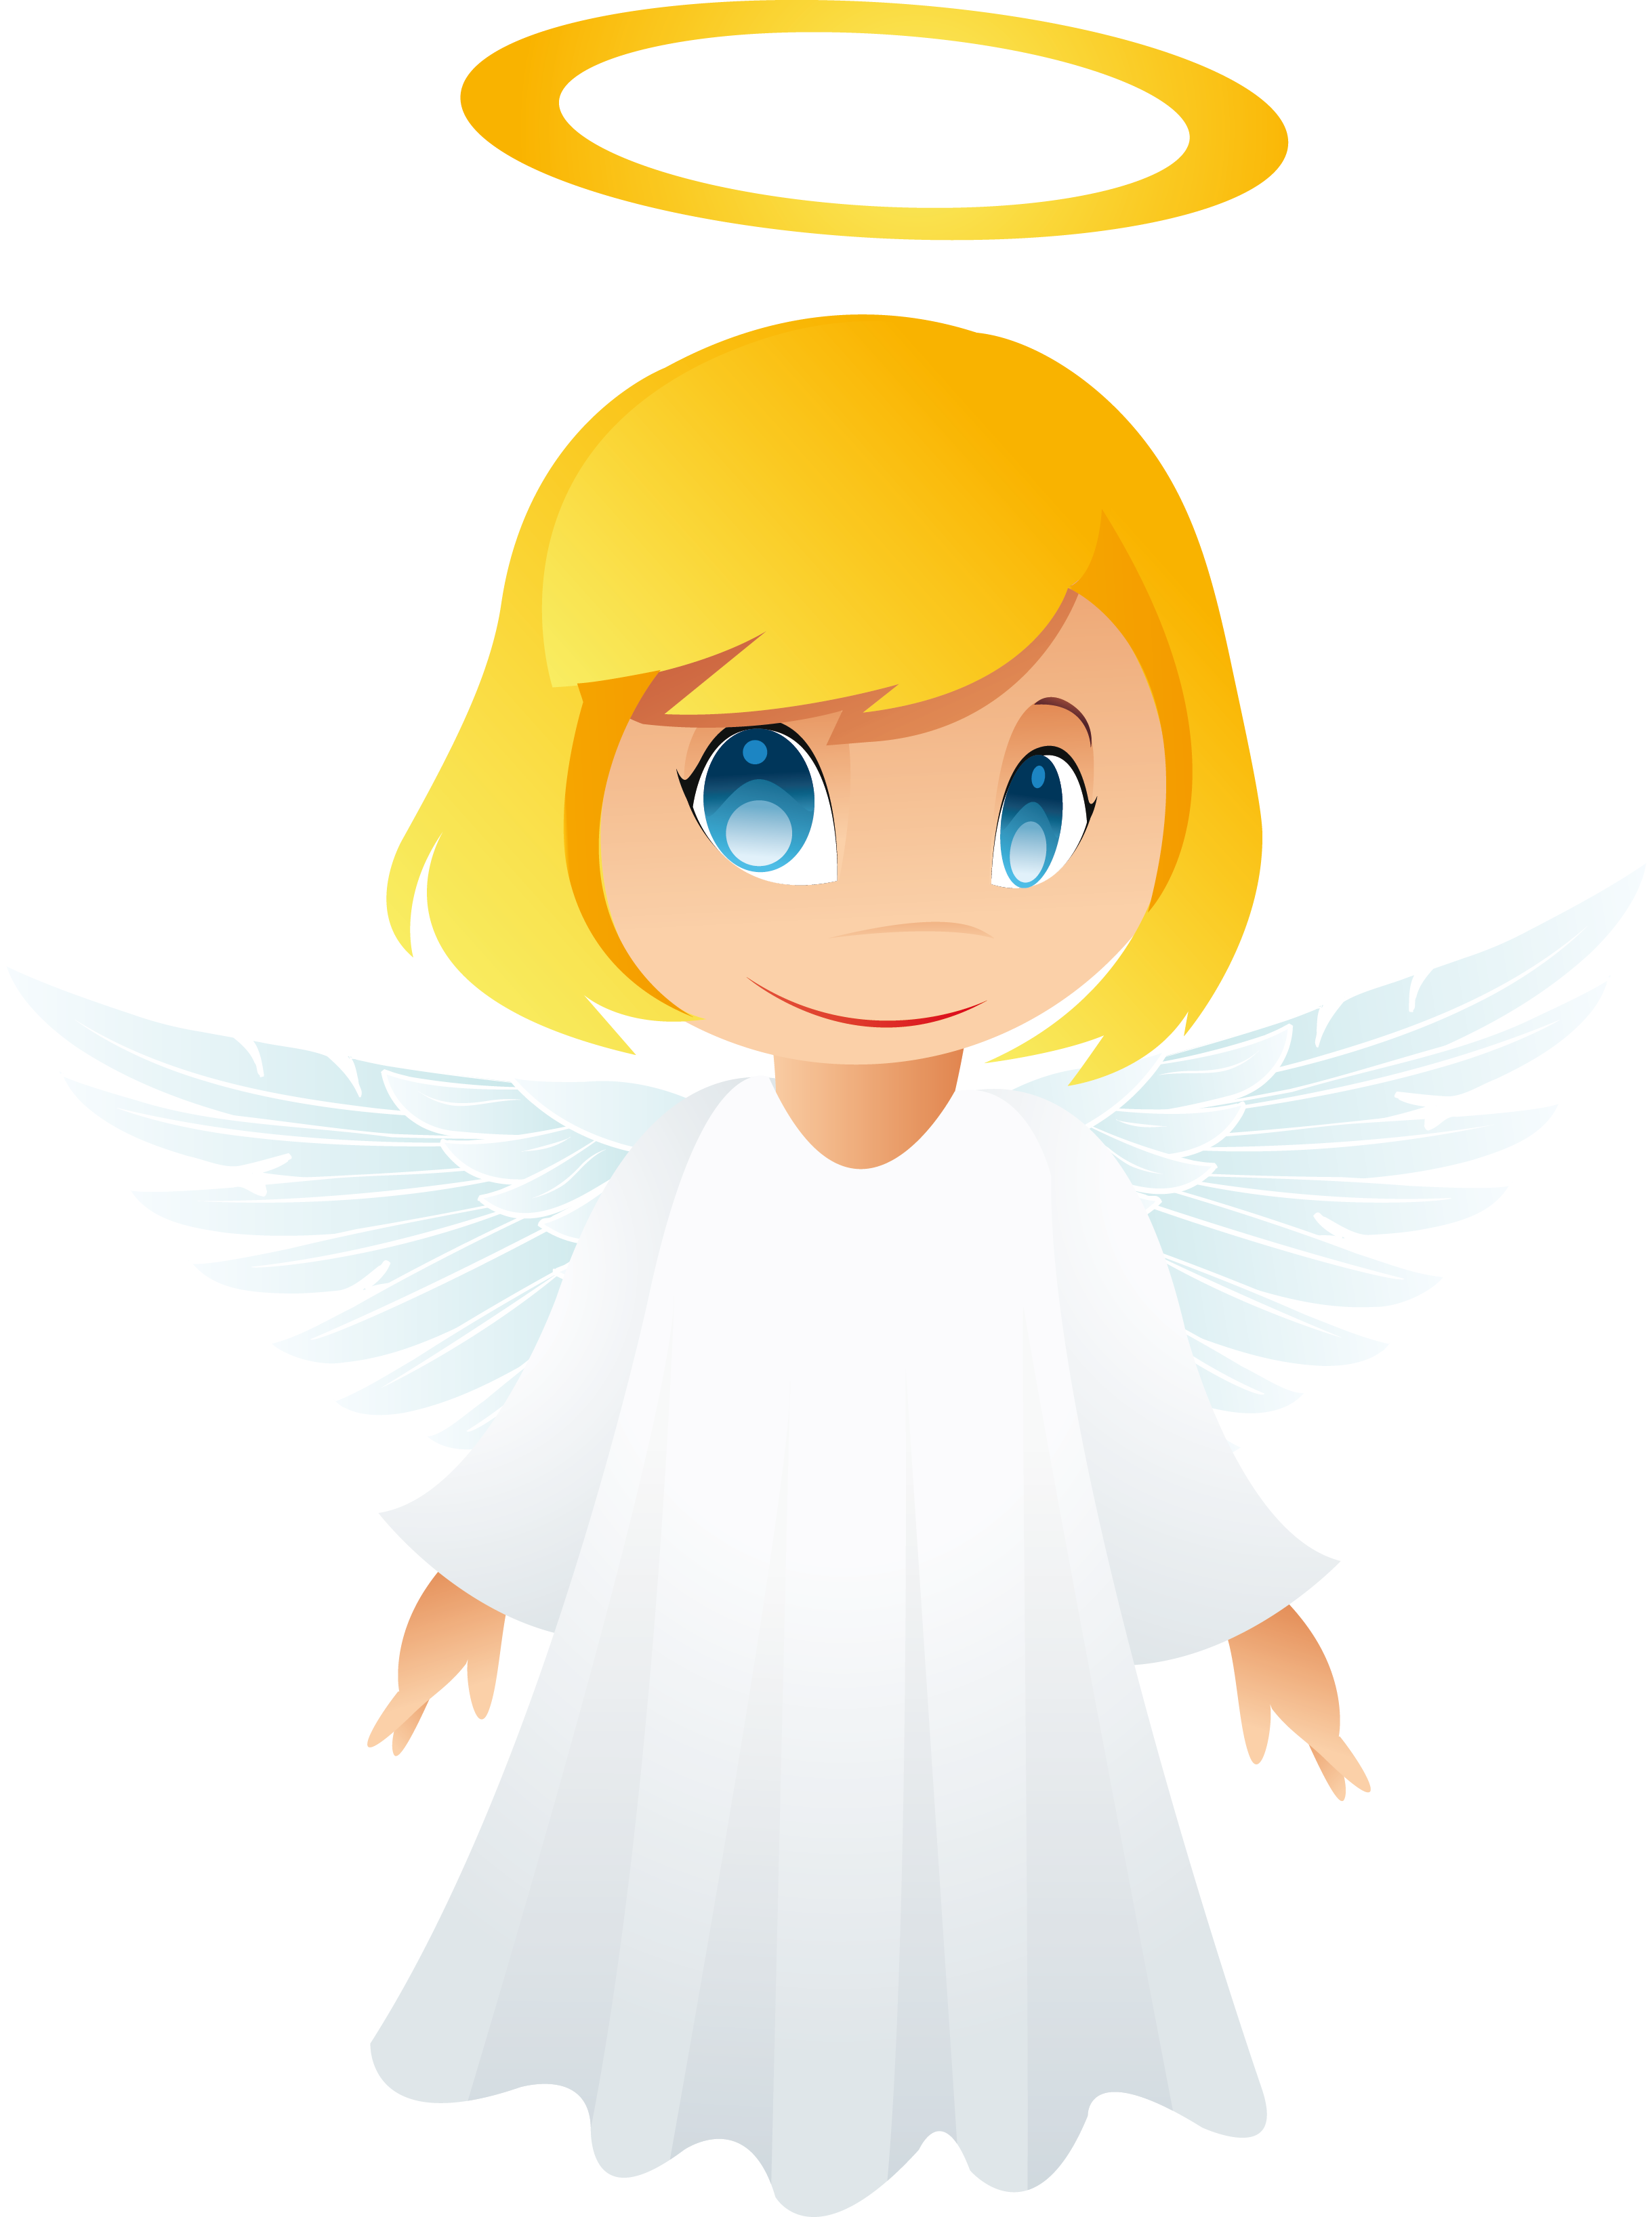 Transparent images all free. Angel png clipart png royalty free download